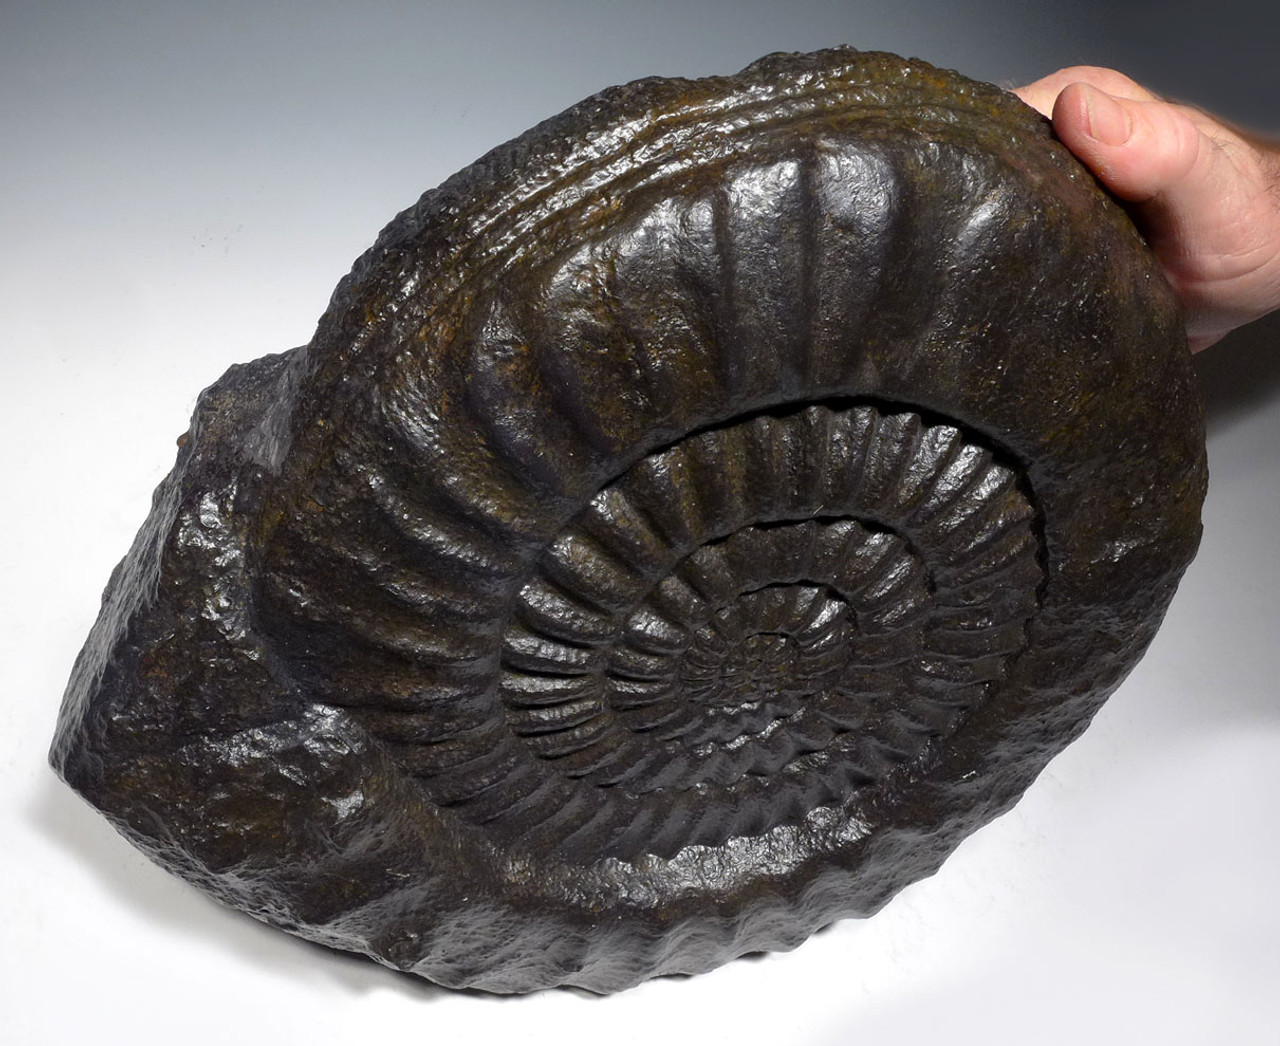 AMX391 - STUNNING LARGE ARIETITES AMMONITE FROM THE JURASSIC PERIOD OF FRANCE